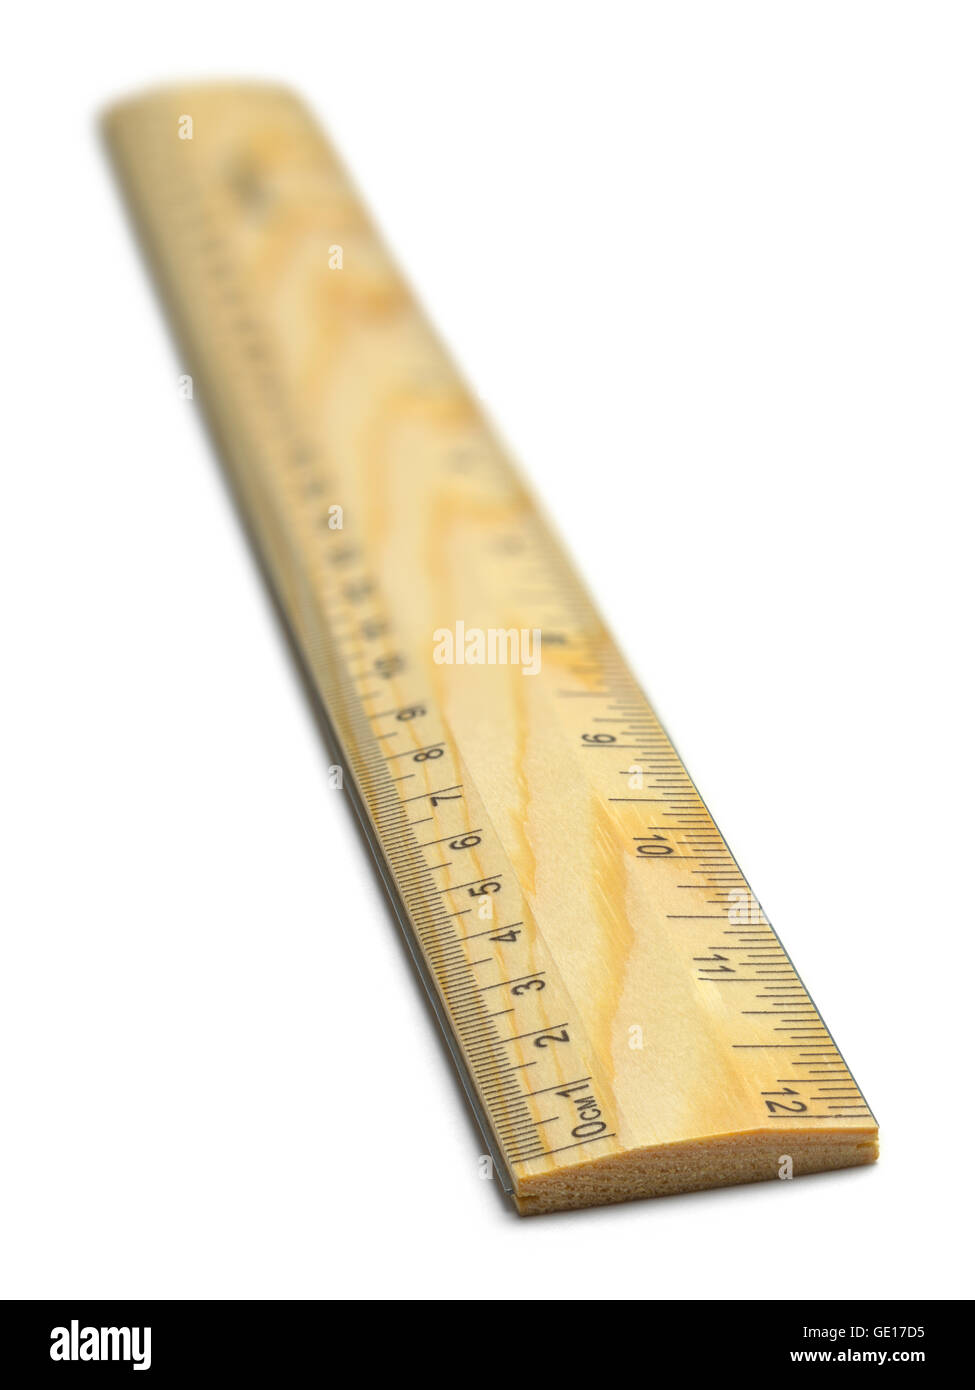 Wooden School Ruler with Inches and Millimeters Isolated on White Background. - Stock Image